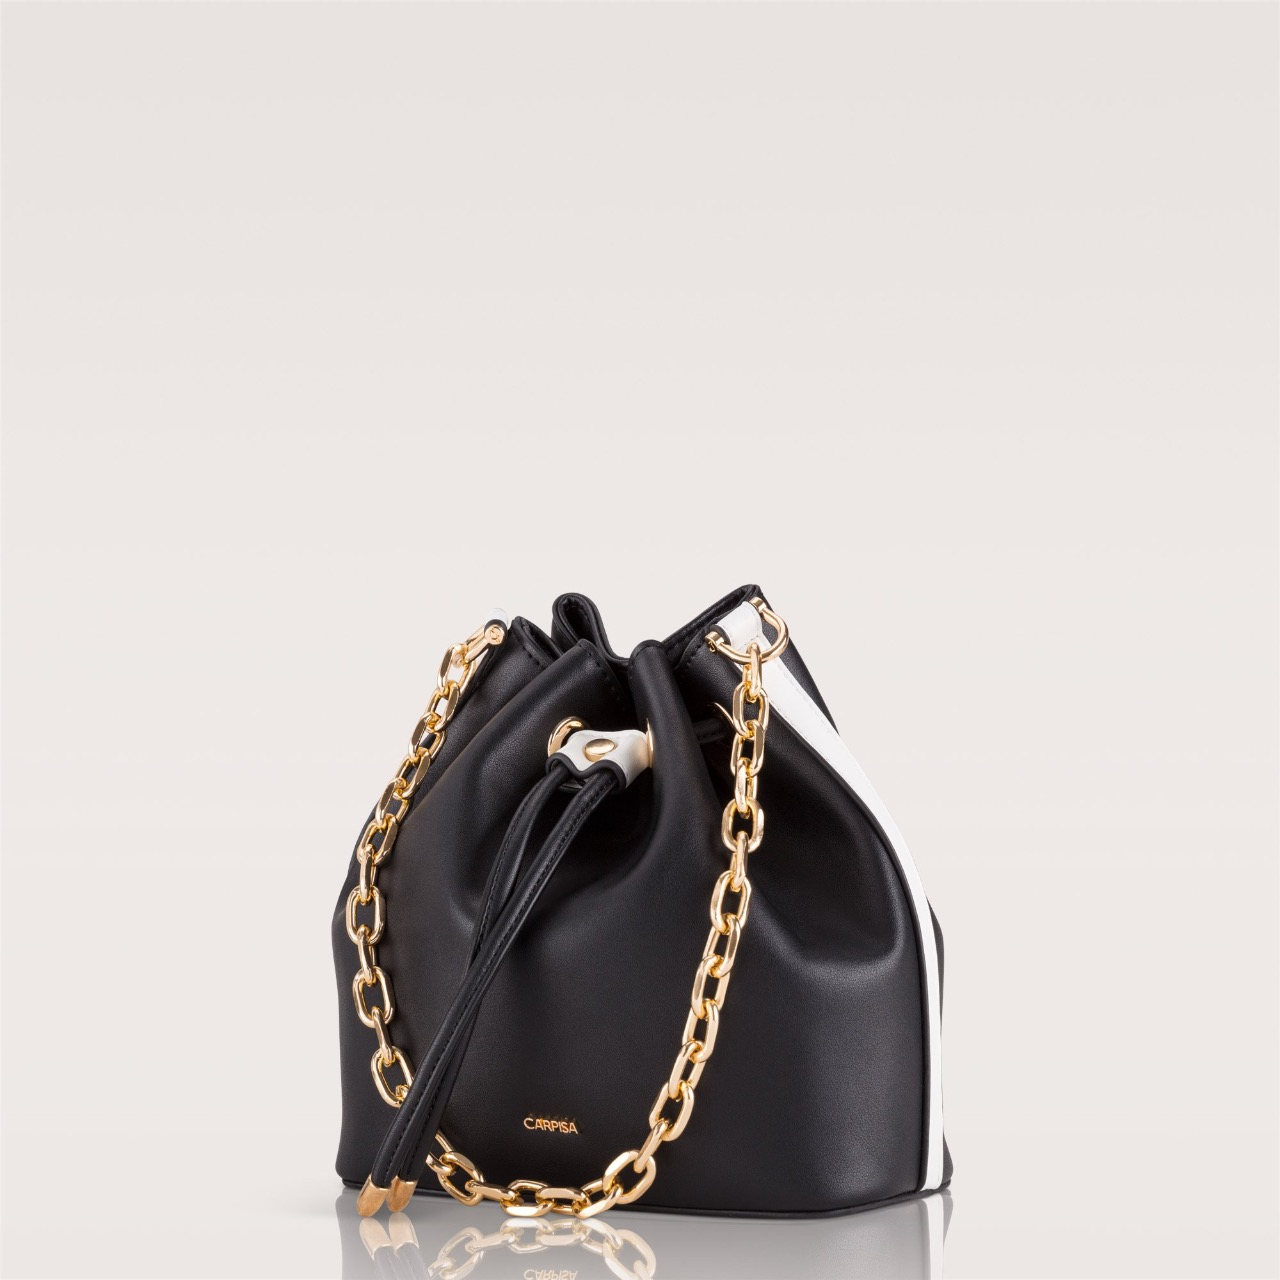 Bucket bag Rebecca priced at INR 4599